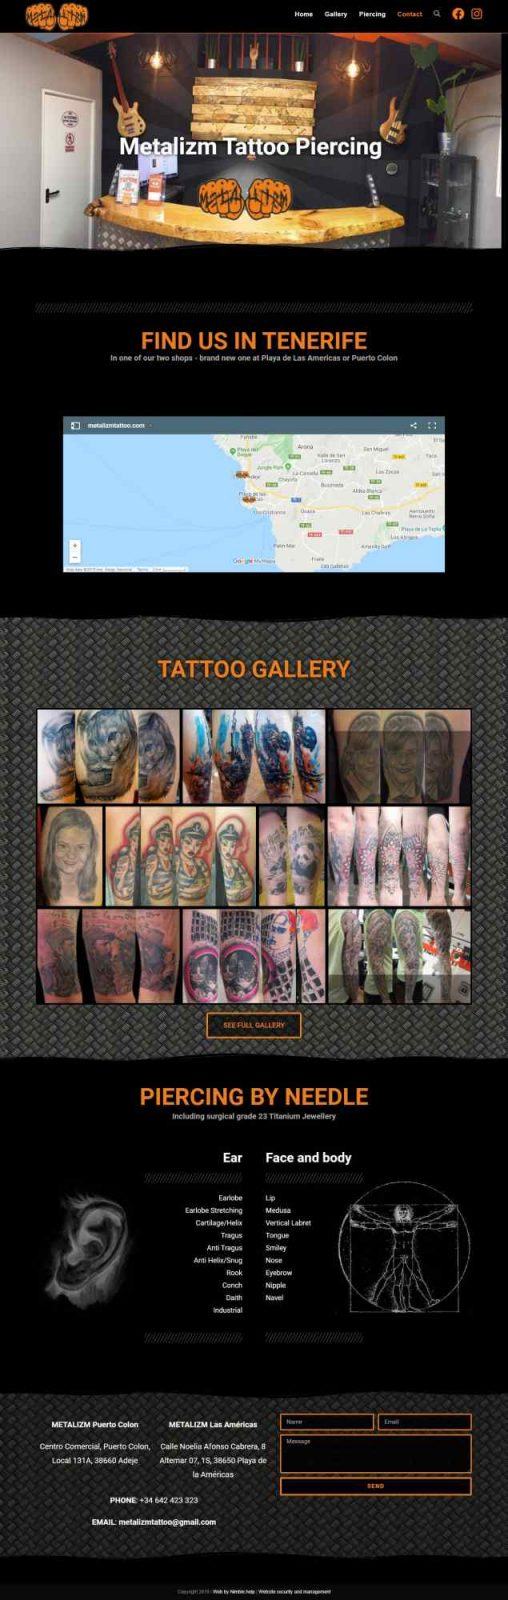 Tattoo studio website